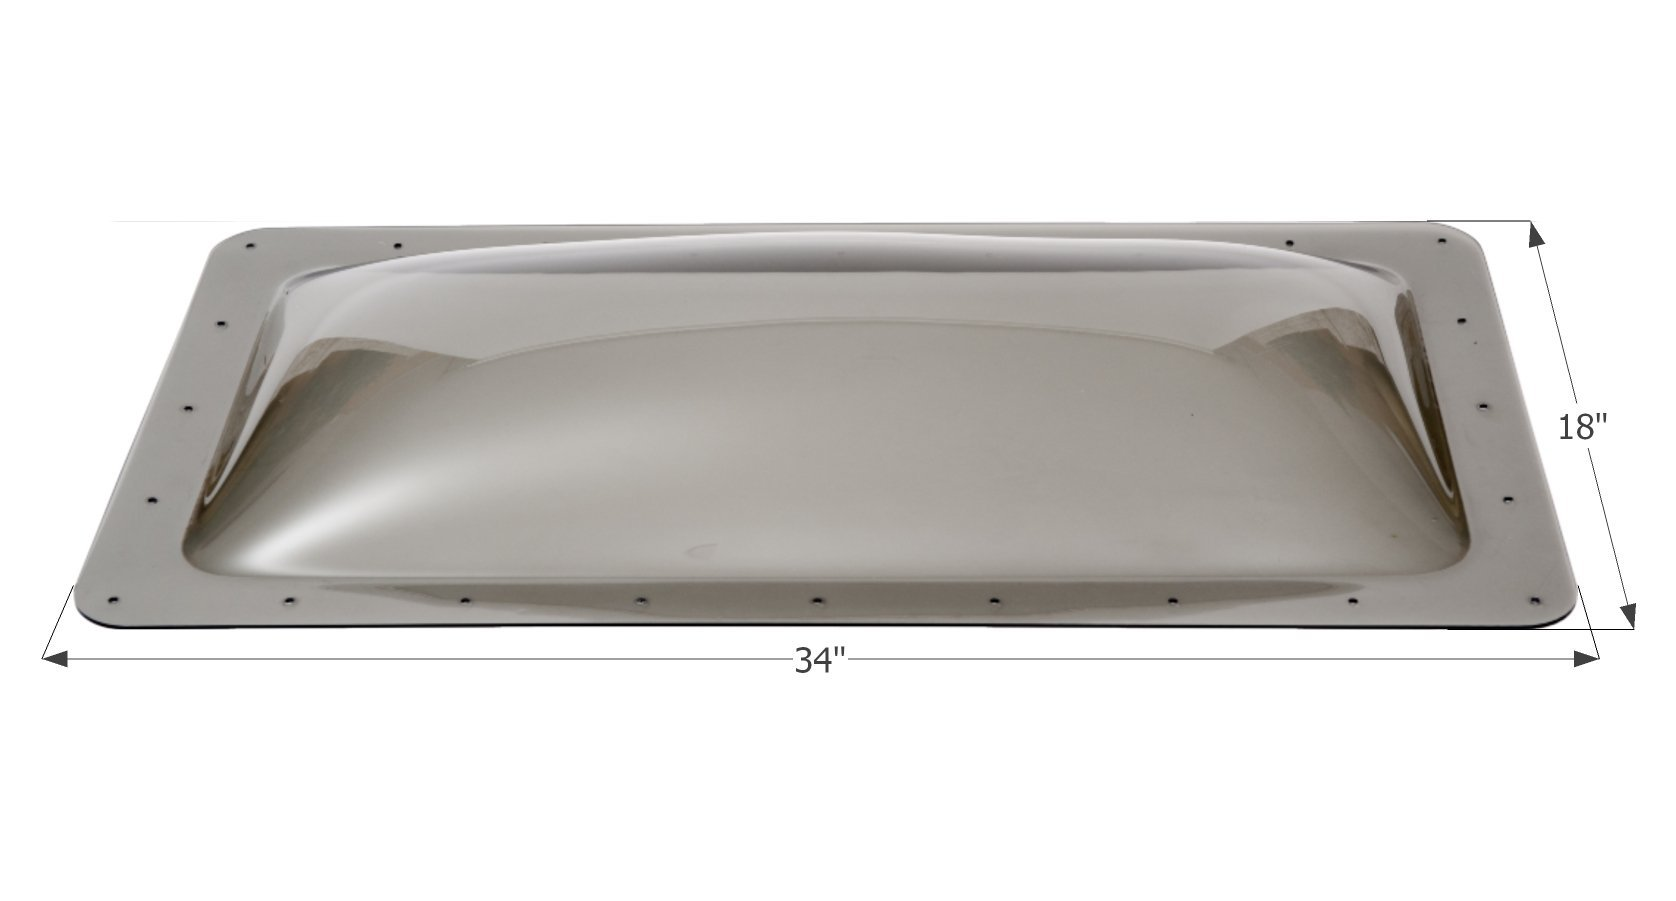 ICON 12117 RV Skylight by ICON